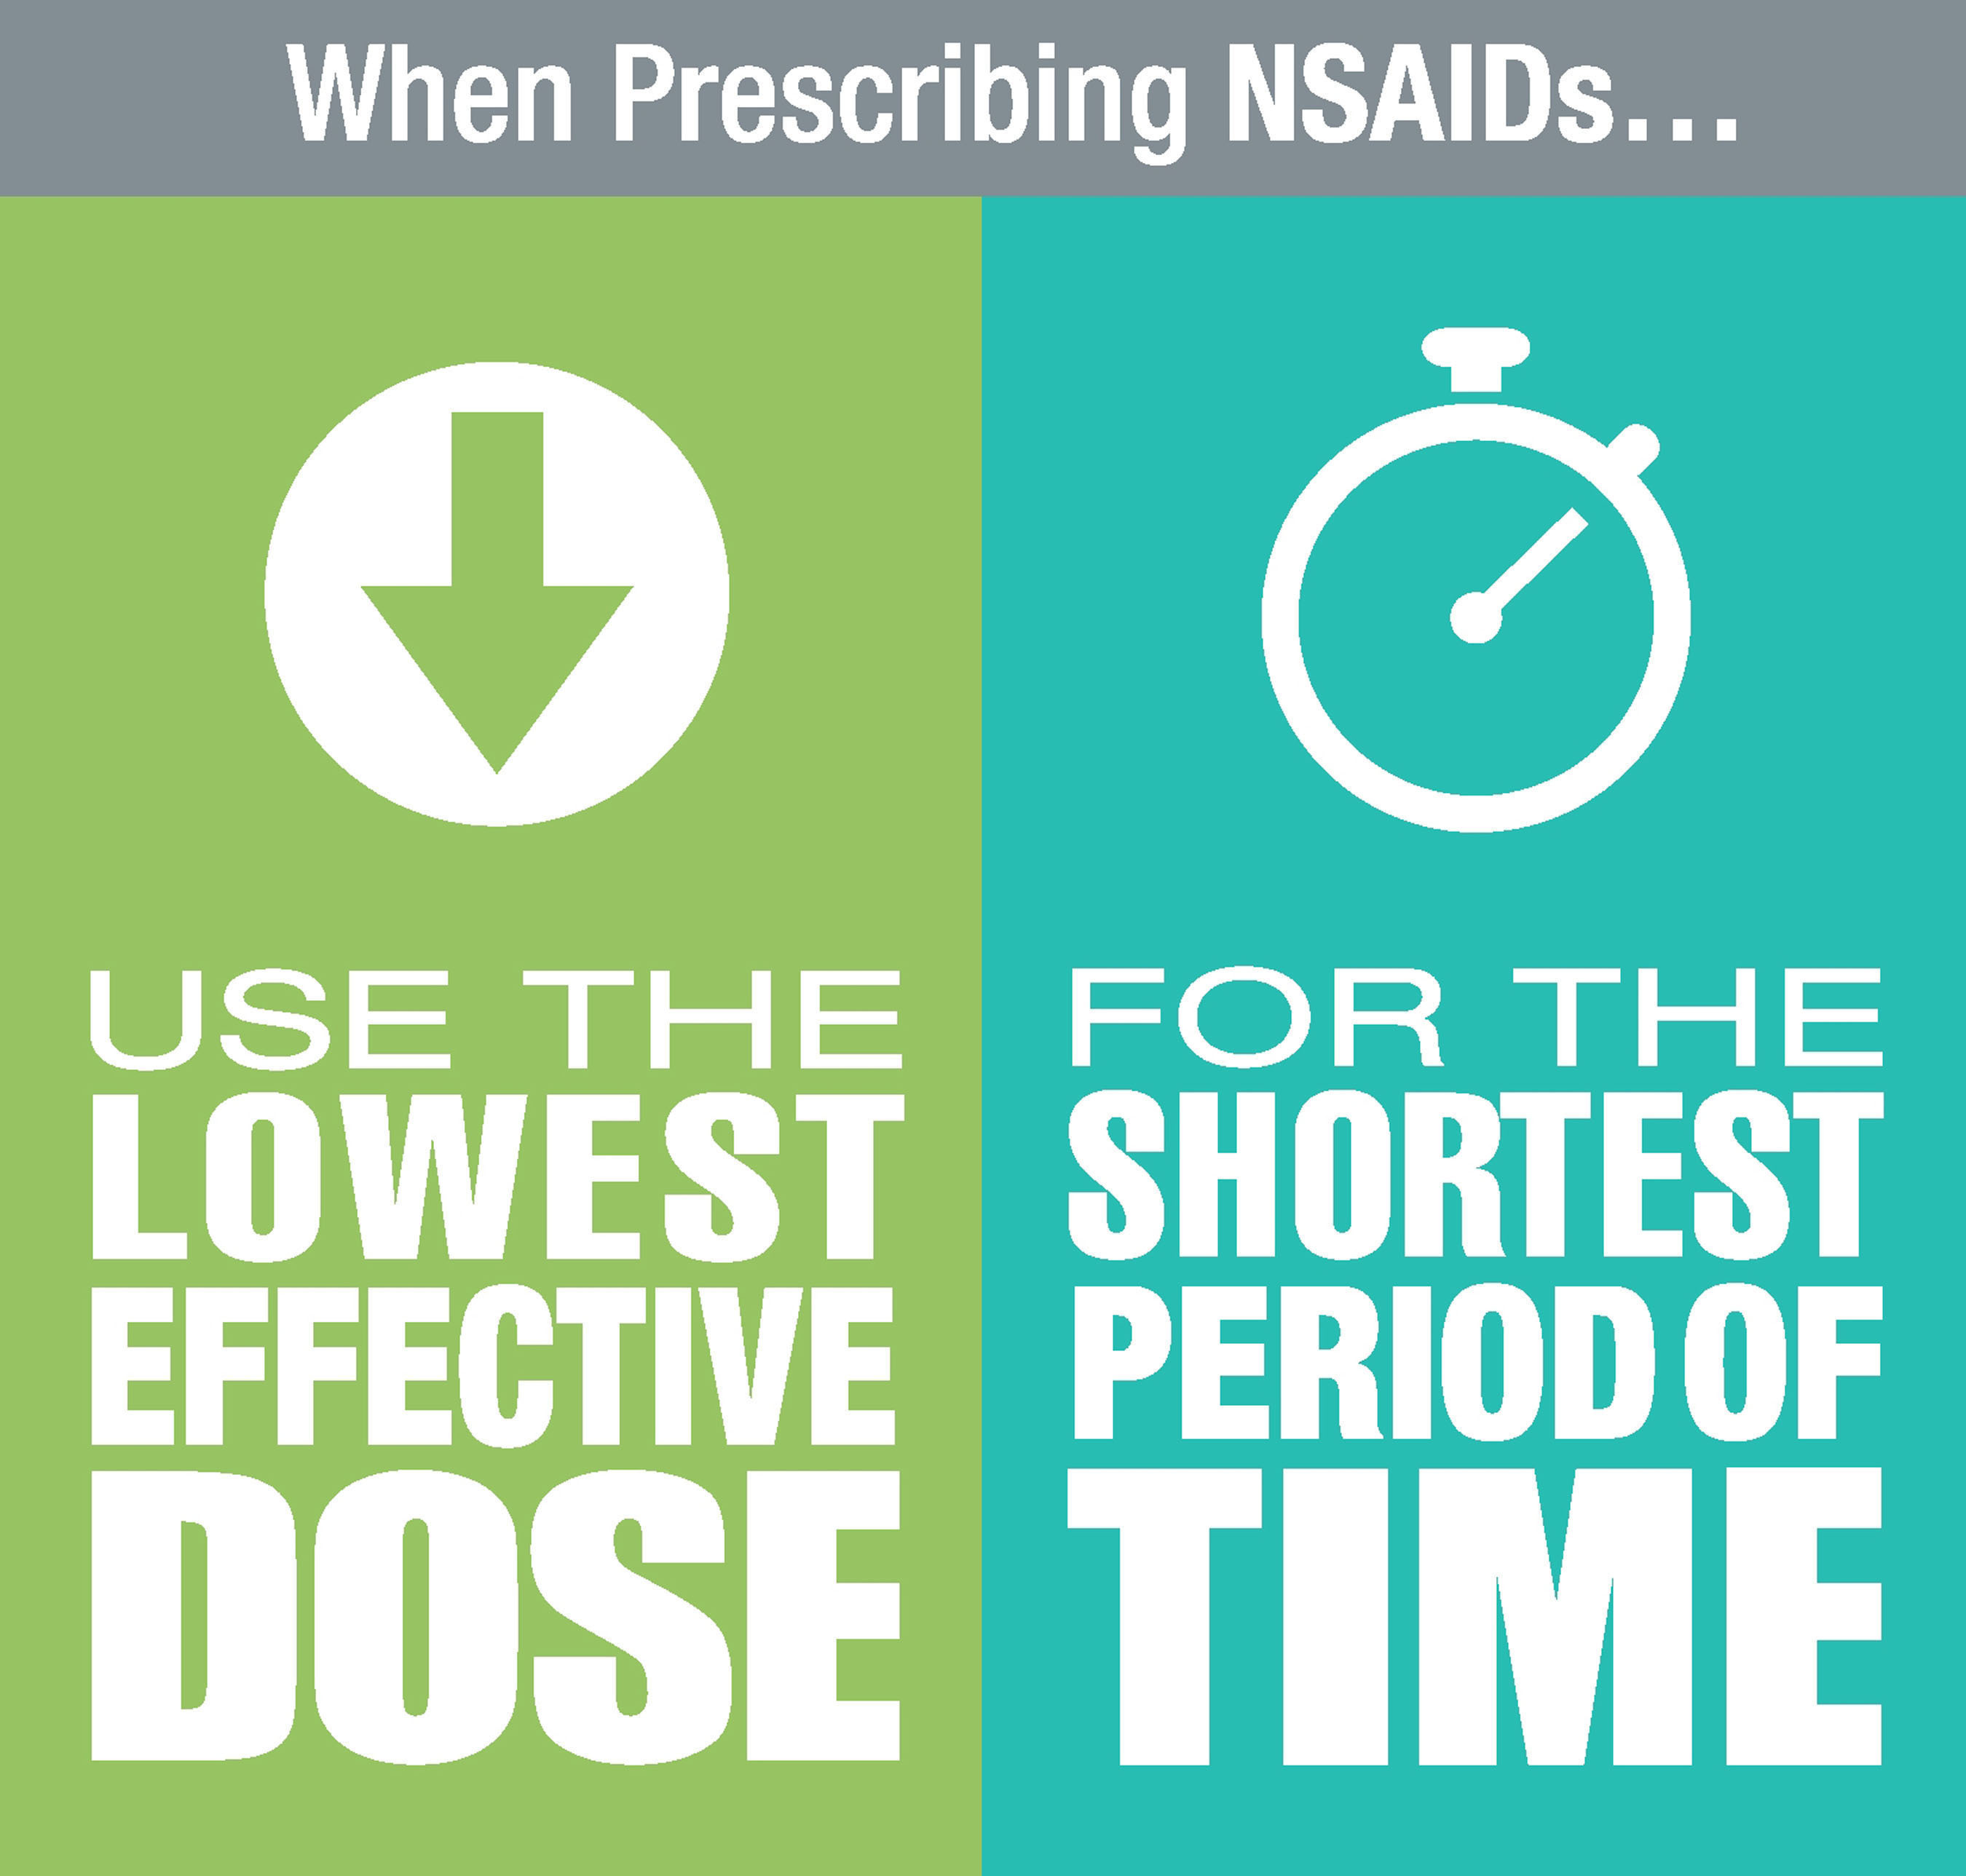 Western Pain Society Galvanizes Coalition to Launch the Alliance for Rational Use of NSAIDs